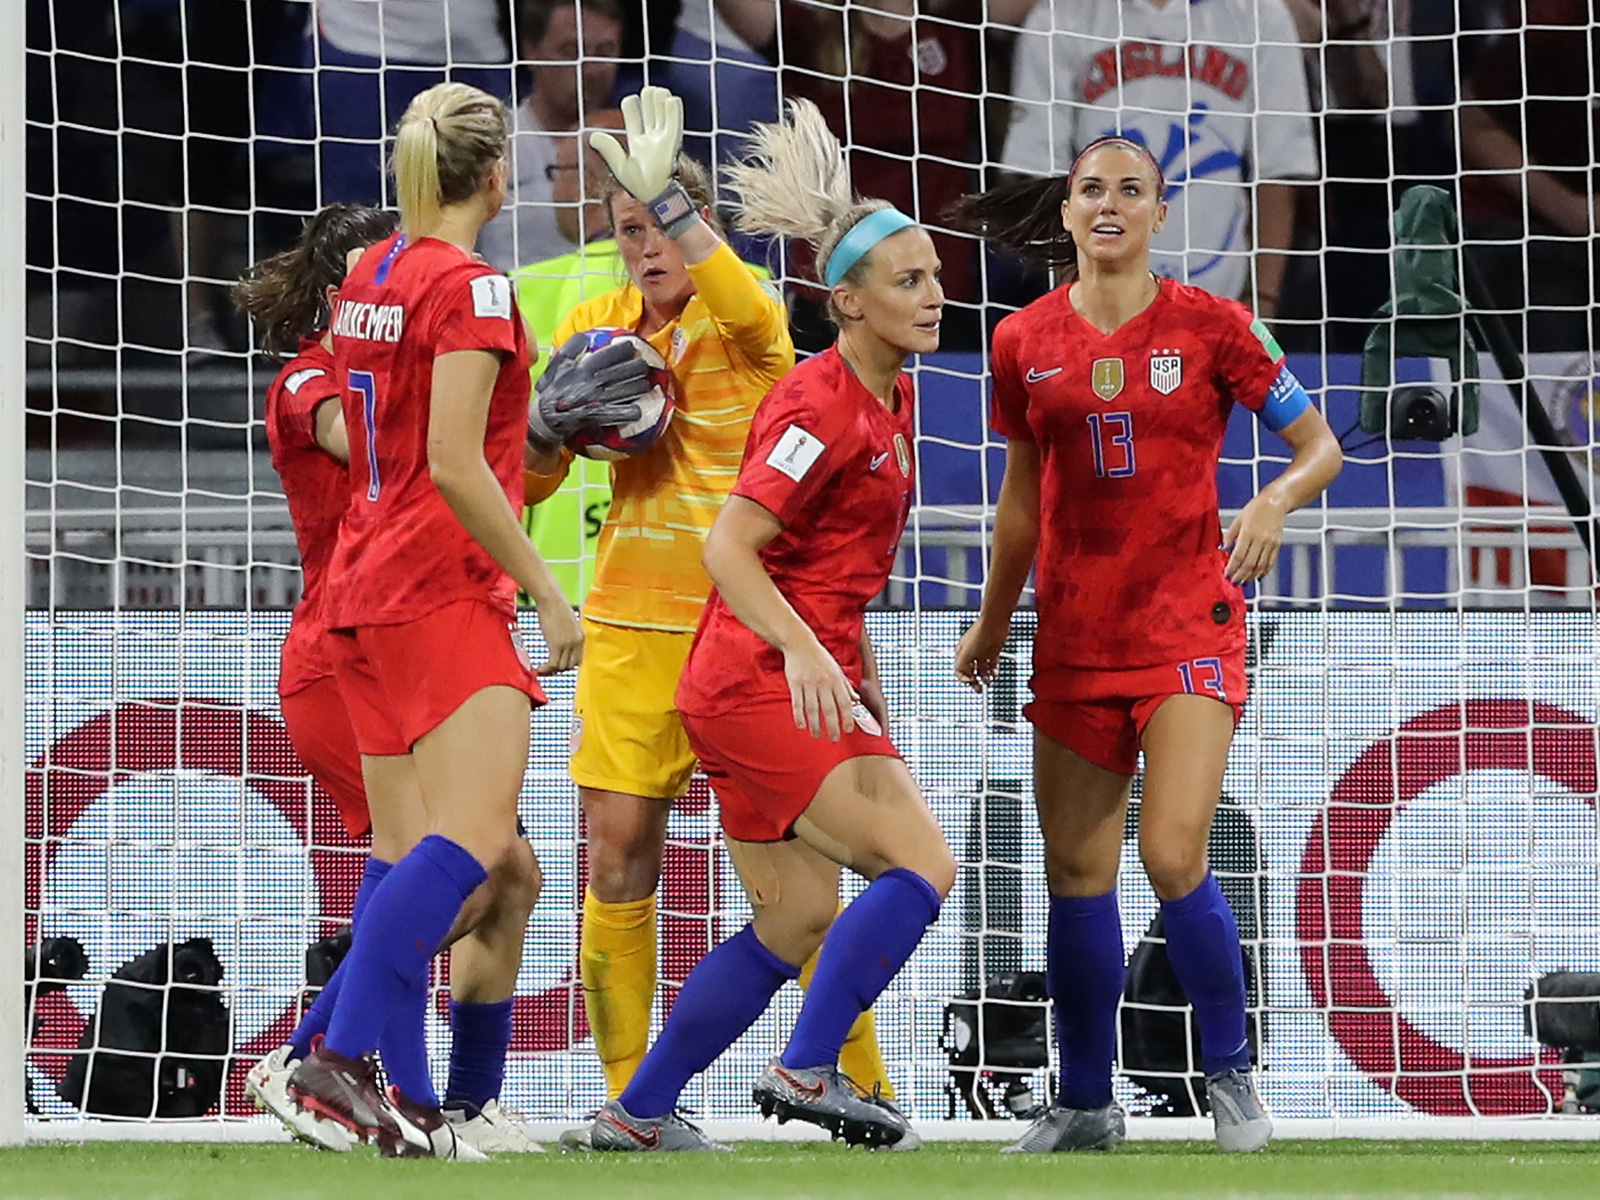 Alyssa Naeher saves a PK for the USA vs. England in the Women's World Cup